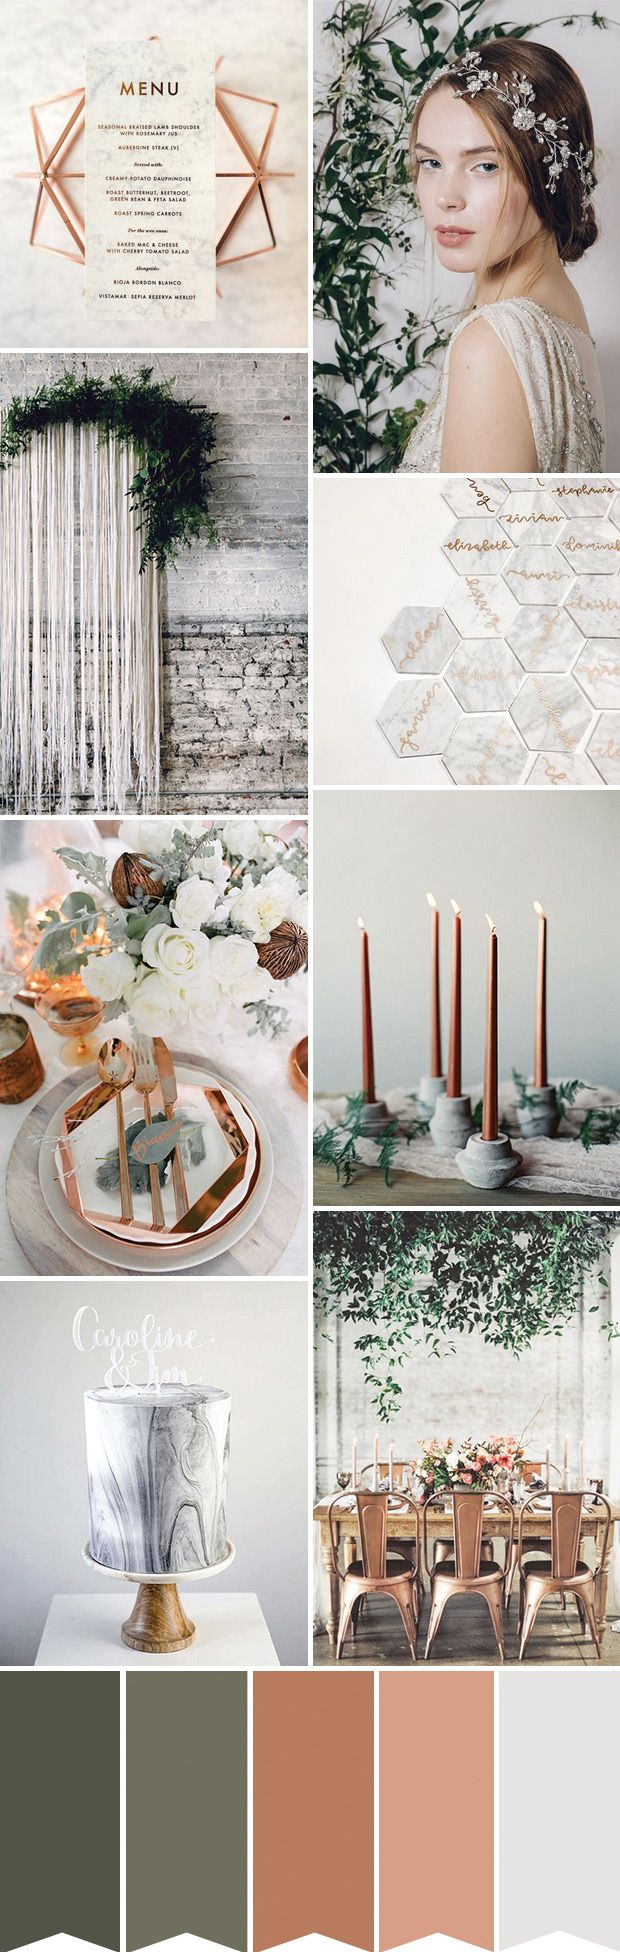 Industrial Elegance: A Copper and Marble Inspired Wedding | Party ...